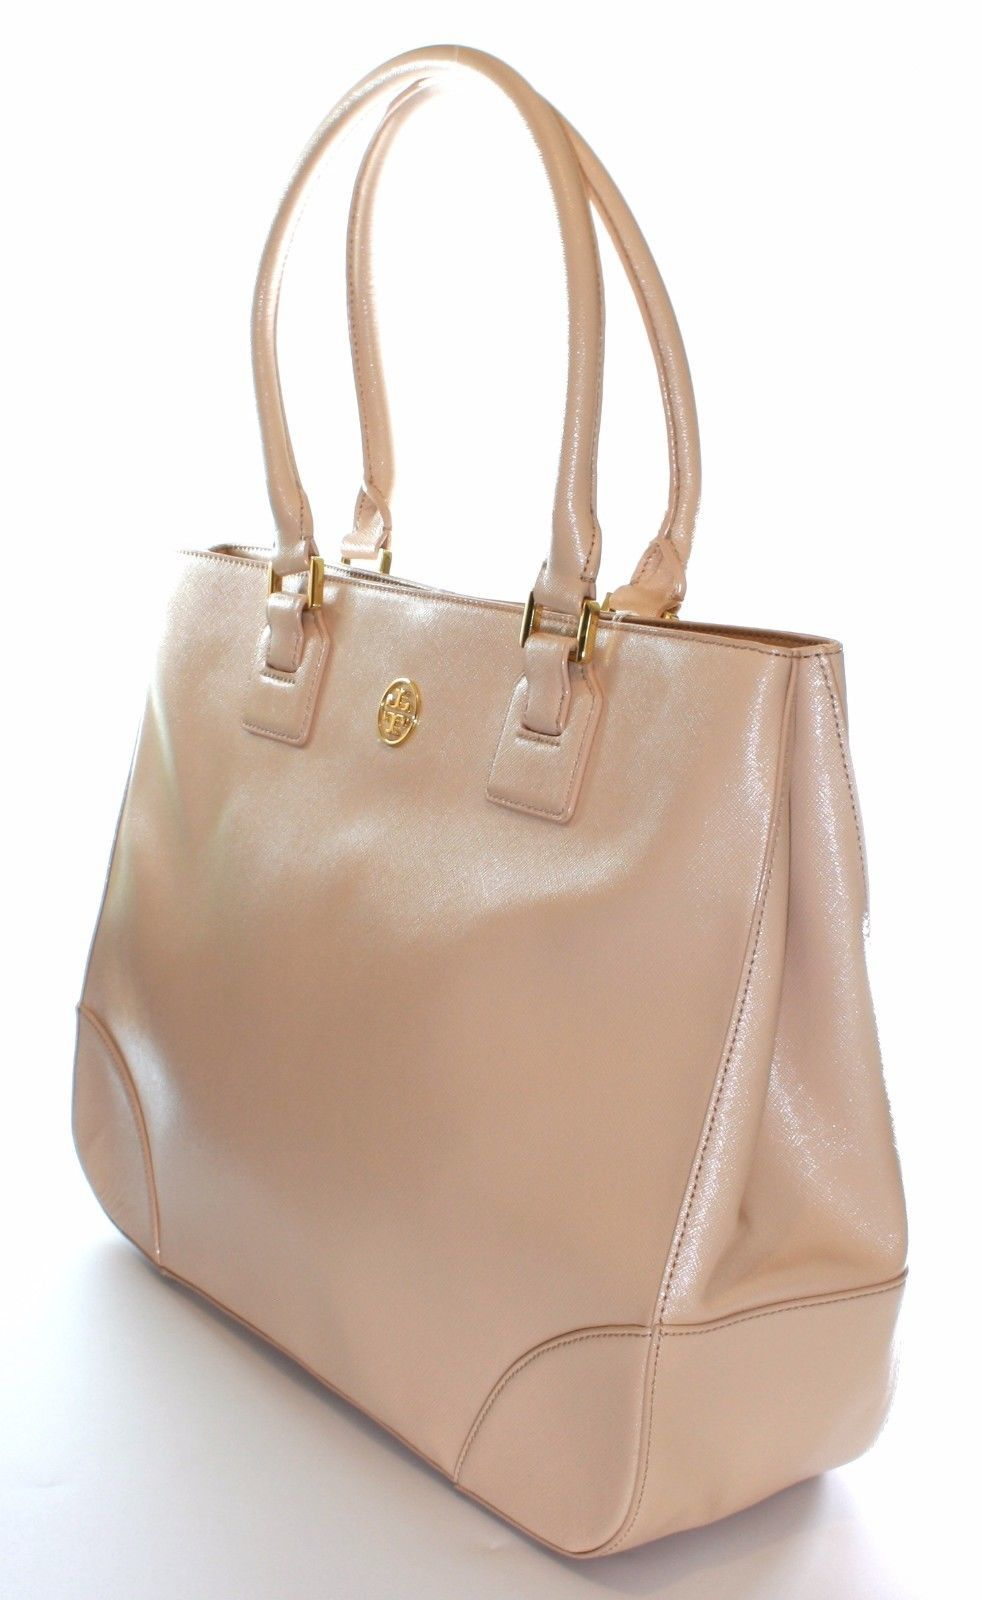 Primary image for Tory Burch Robinson Tote Bag Dark Sahara Pale Pink Leather Large Handbag